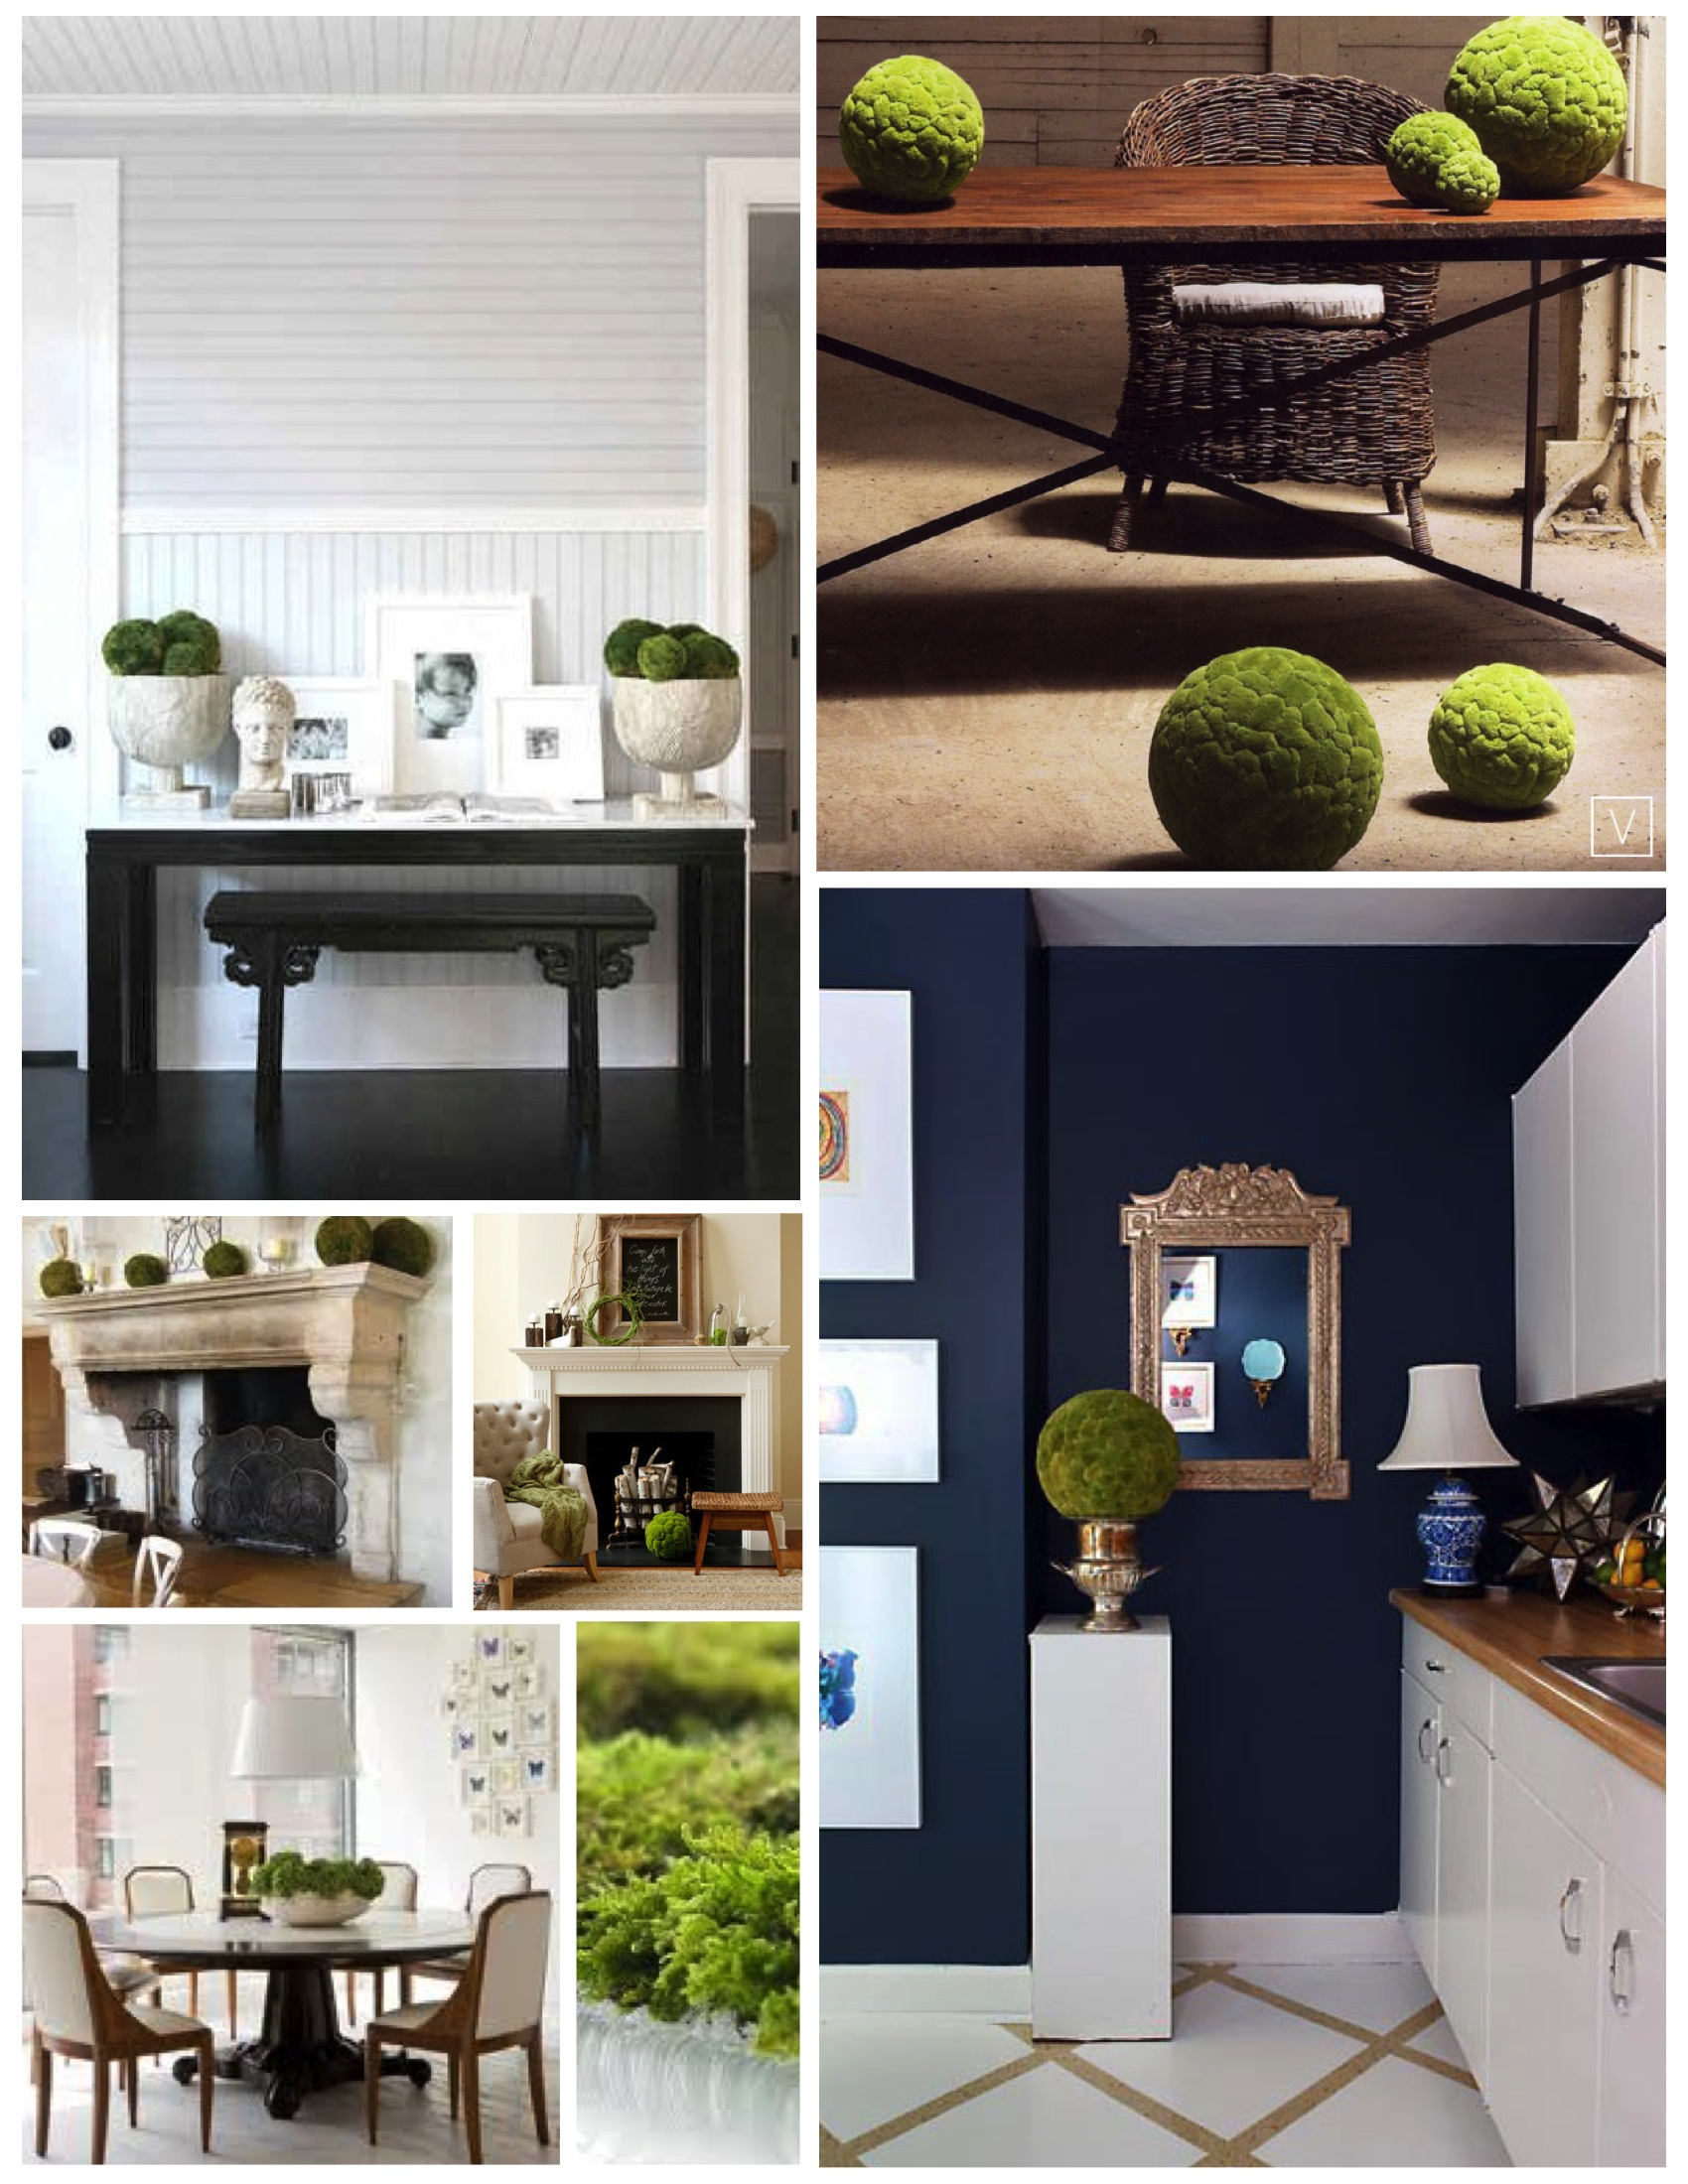 natural arrangements of green moss within the interior house